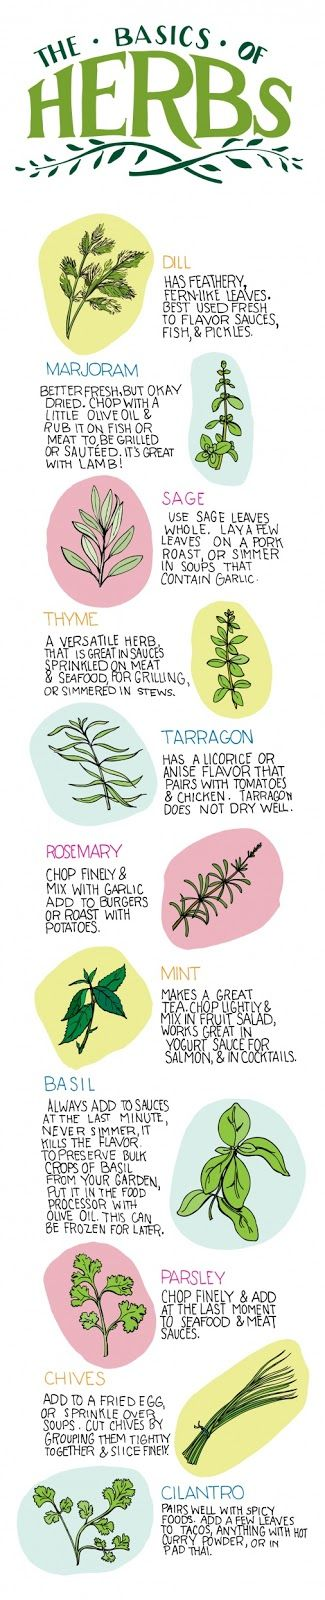 Herb Gardens are just what we all need to spice up the kitchen! Grow your own delicious herbs...it's easy...Check out all of these wonderful Gardens.